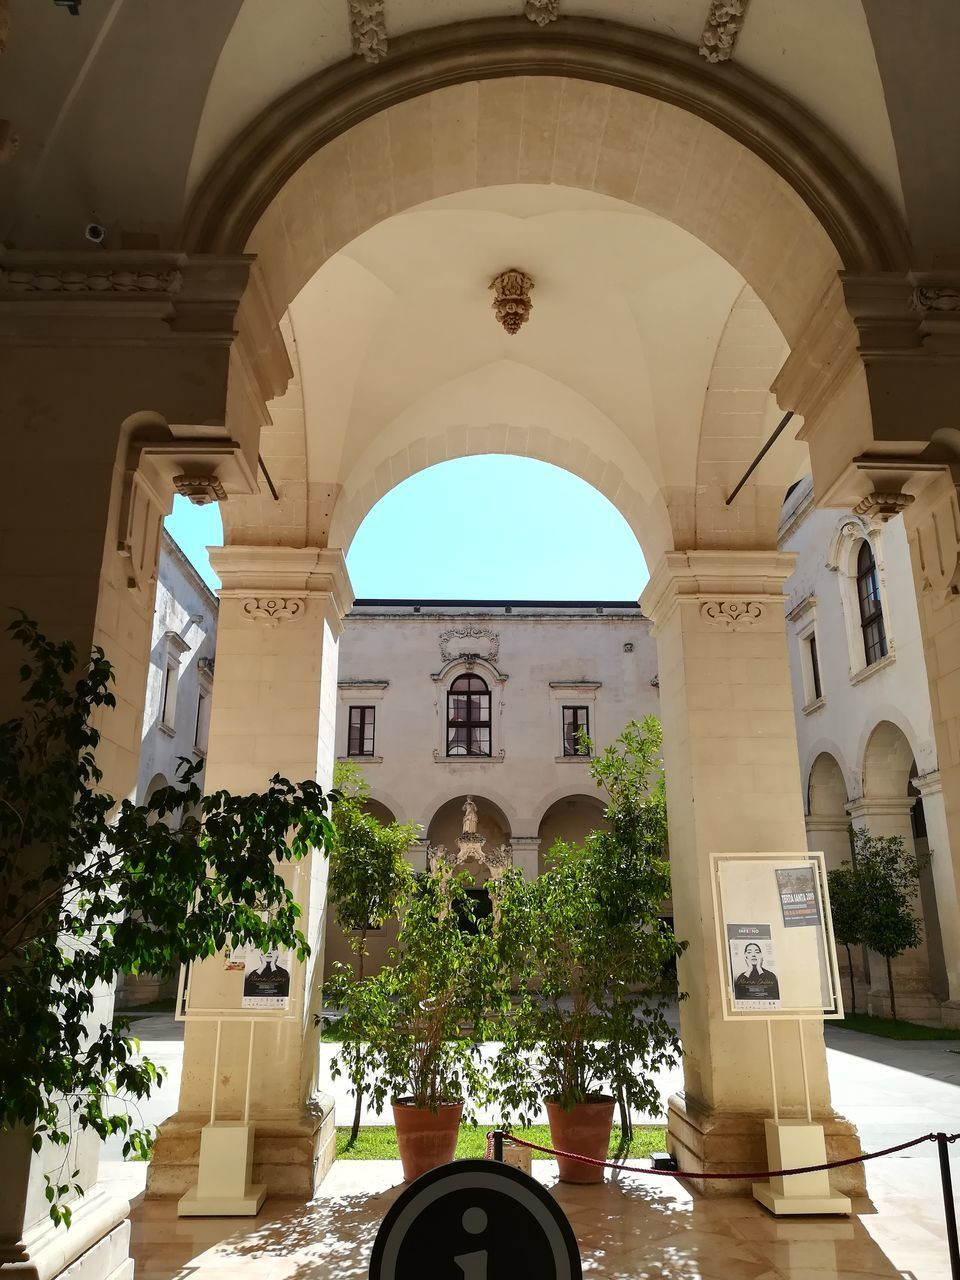 arch, architecture, built structure, building, building exterior, religion, day, spirituality, place of worship, plant, no people, belief, nature, the past, potted plant, history, sunlight, outdoors, architectural column, ceiling, courtyard, arched